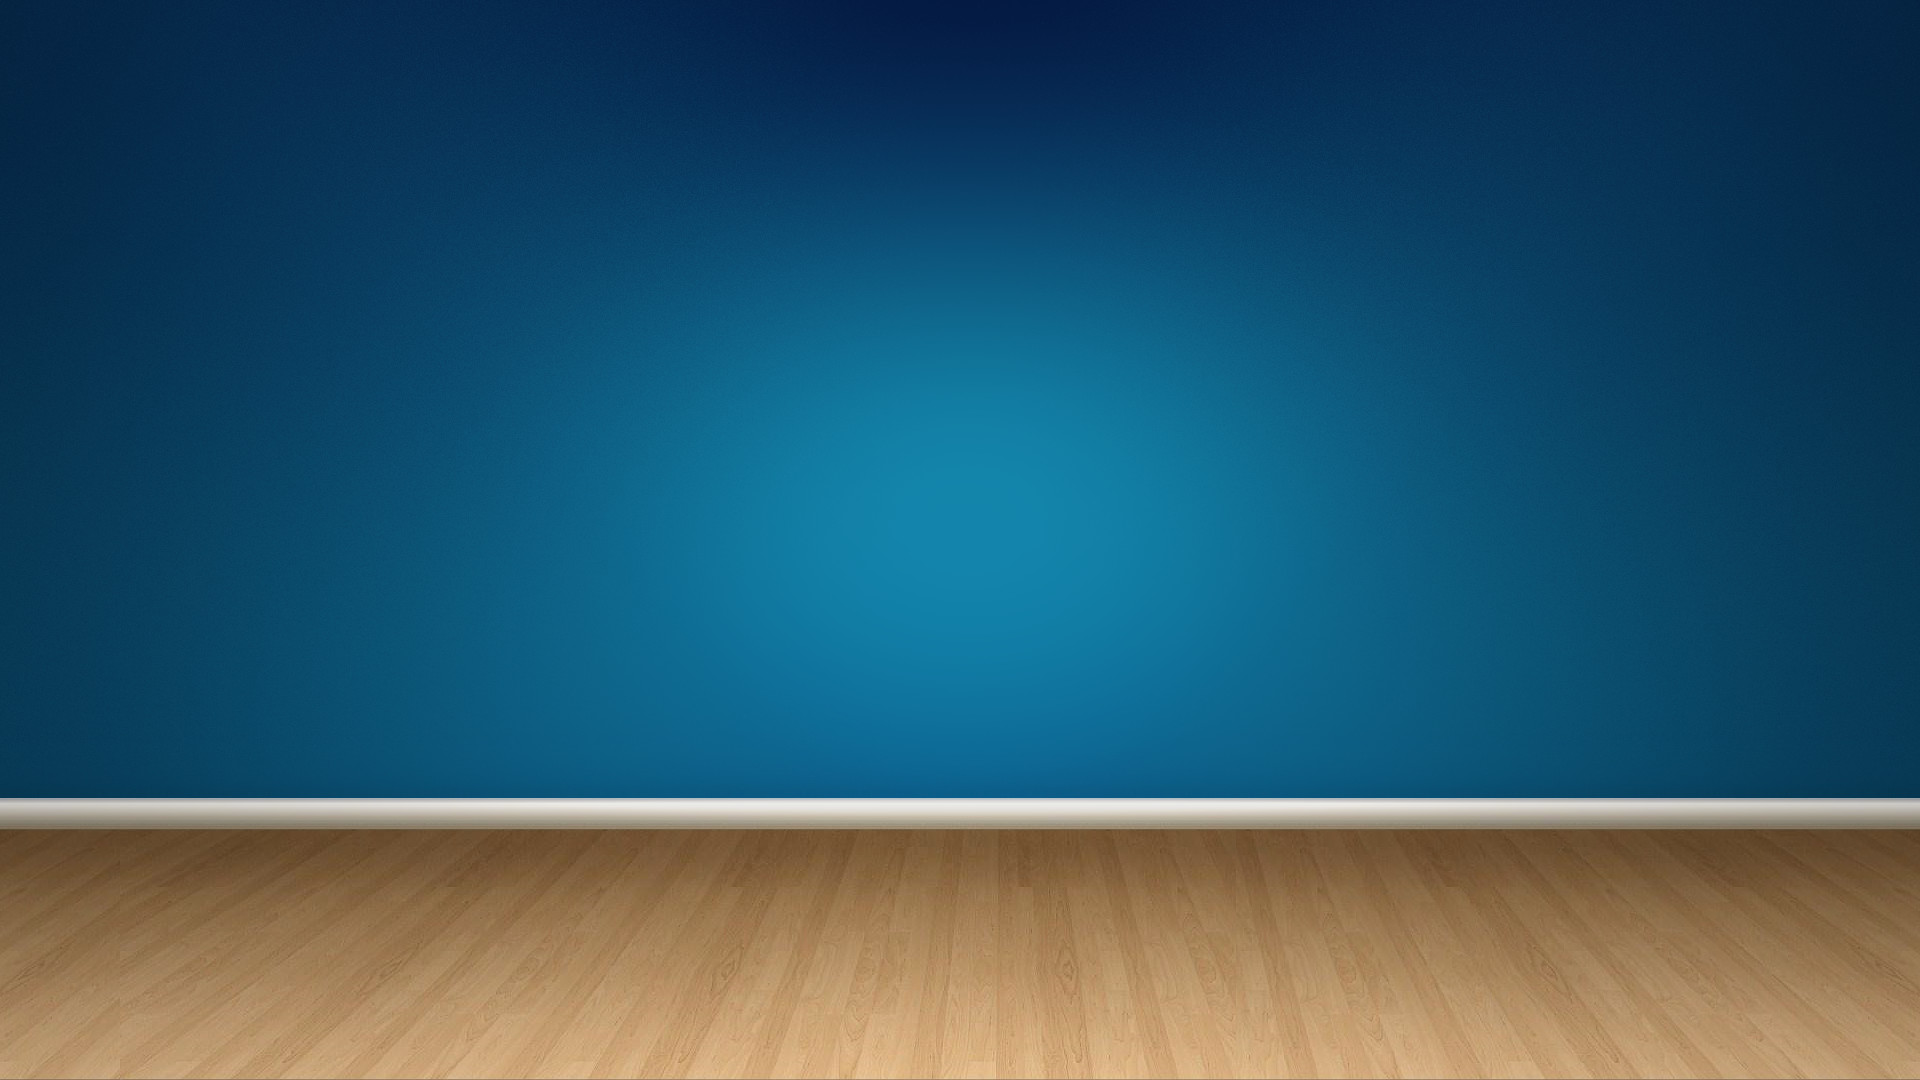 Res: 1920x1080, Blue wall and wood floor wallpaper